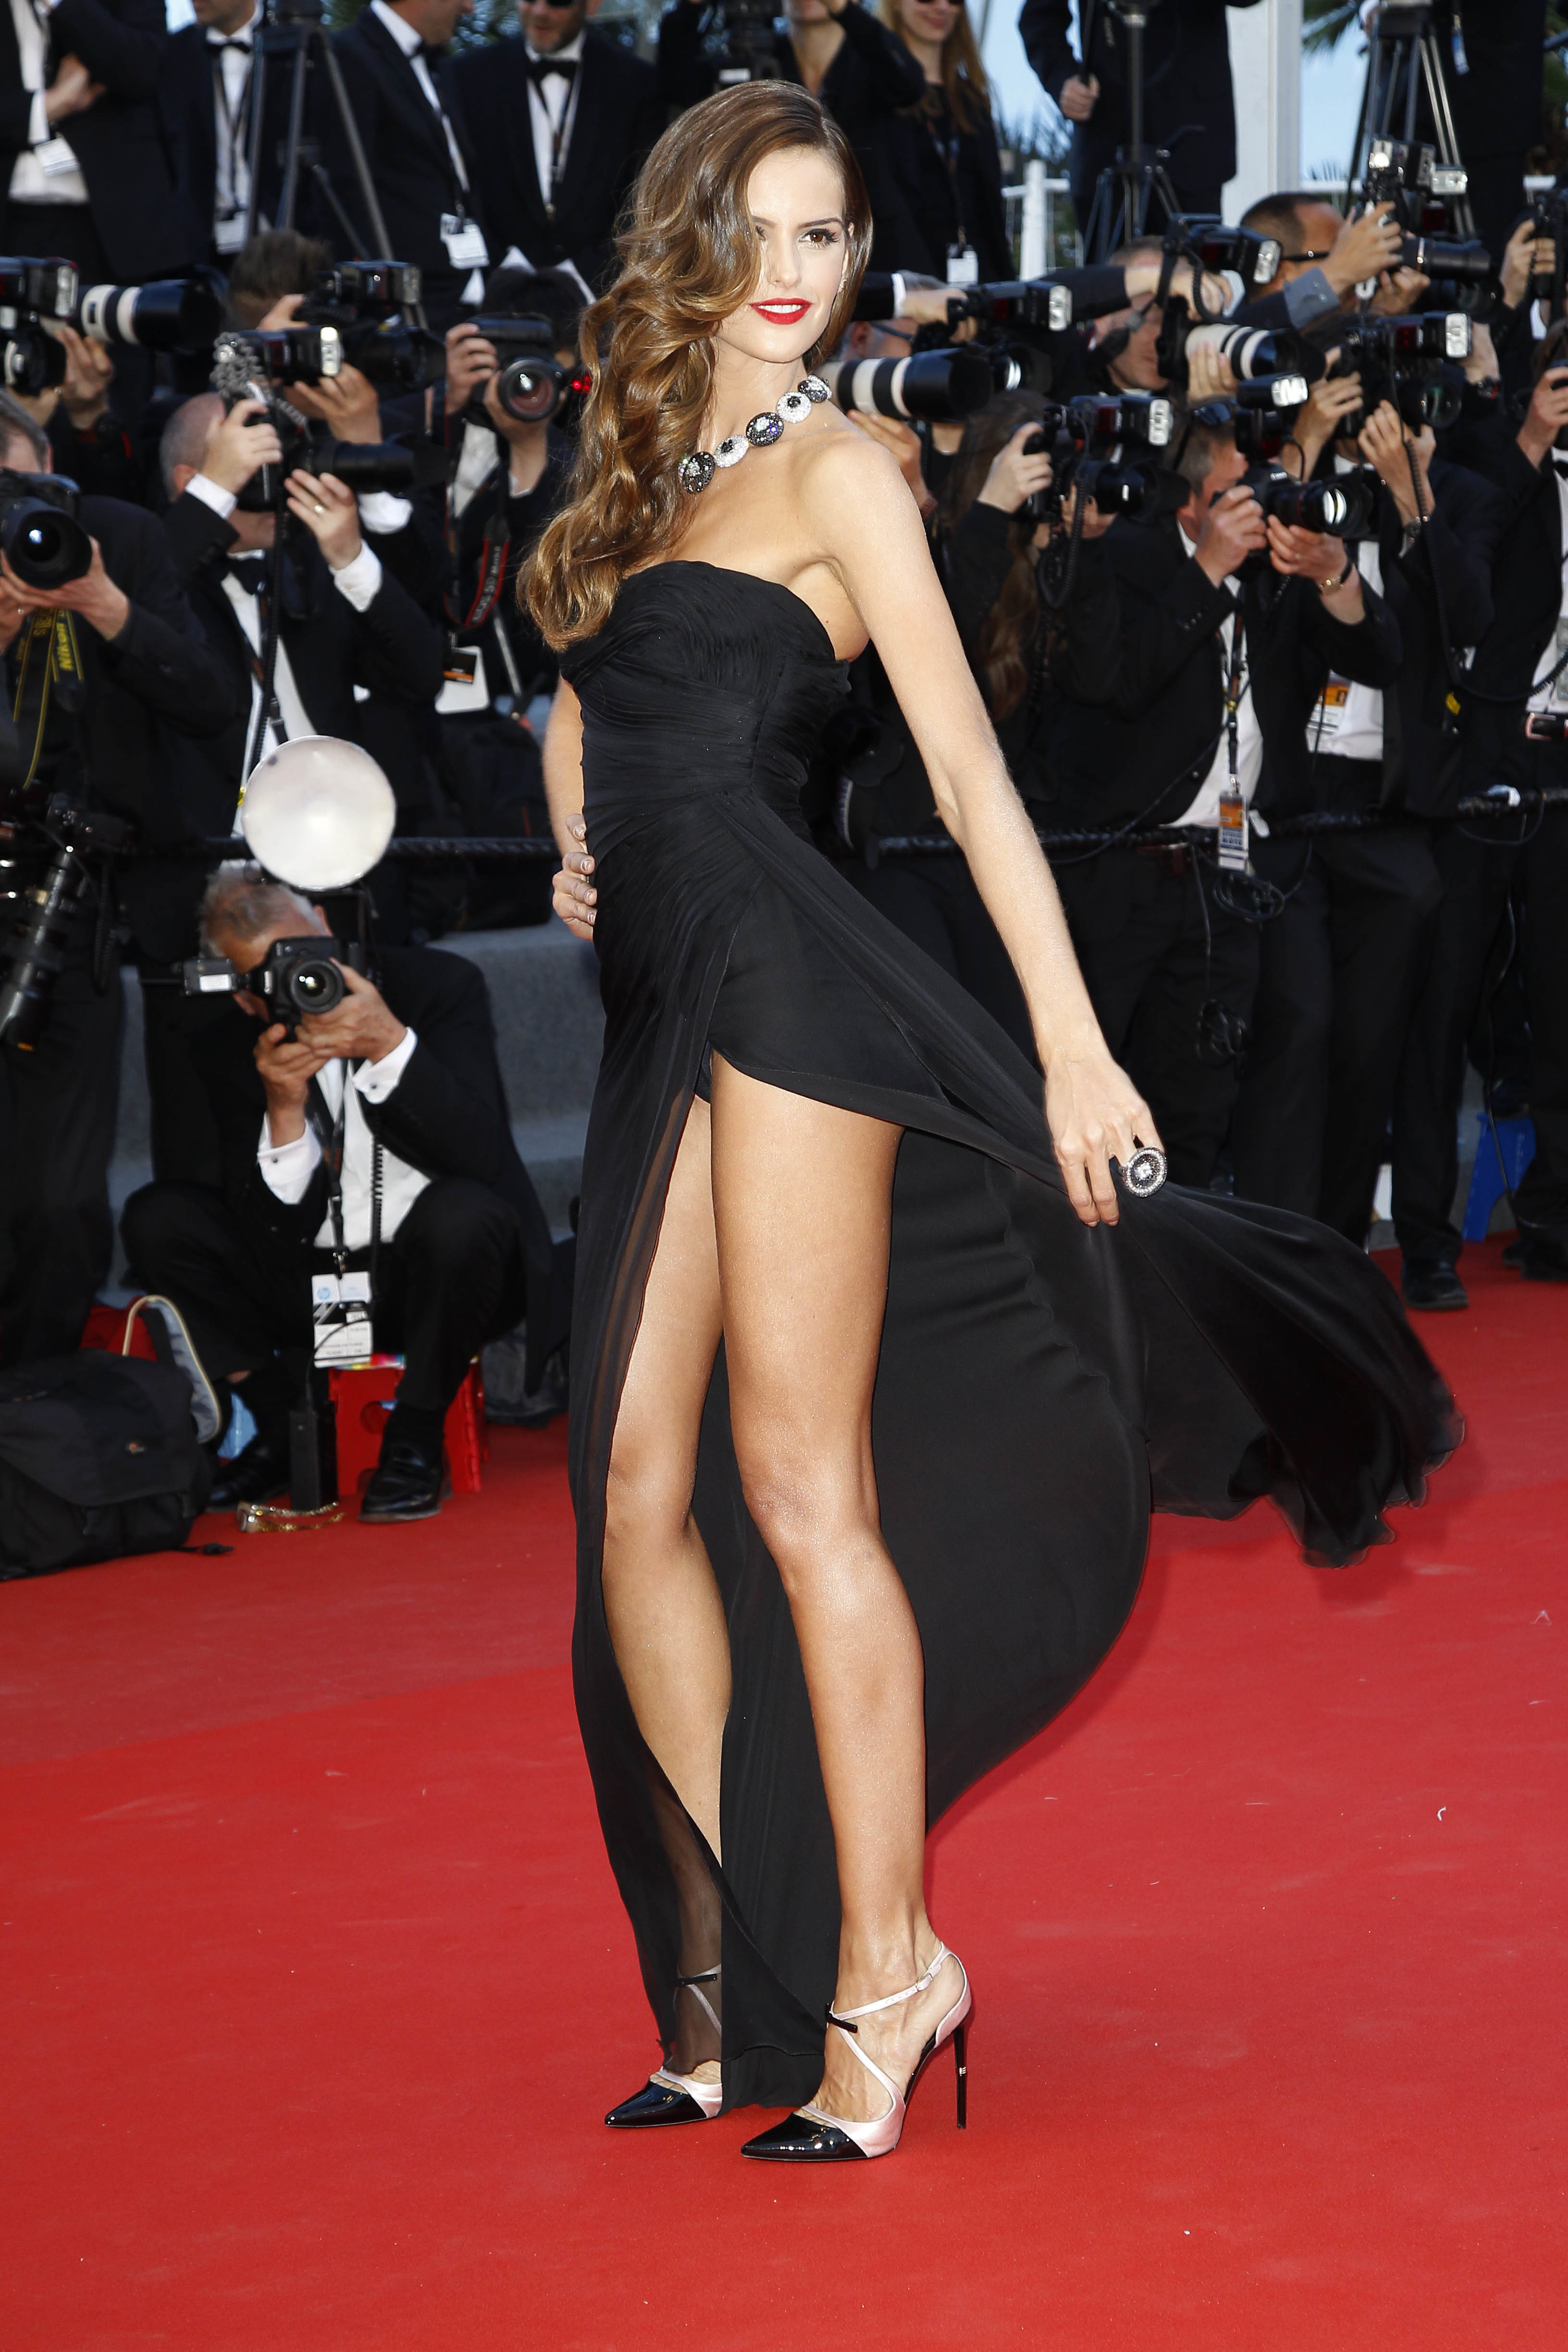 Cleavage Izabel Goulart naked (79 photos), Ass, Cleavage, Instagram, butt 2015